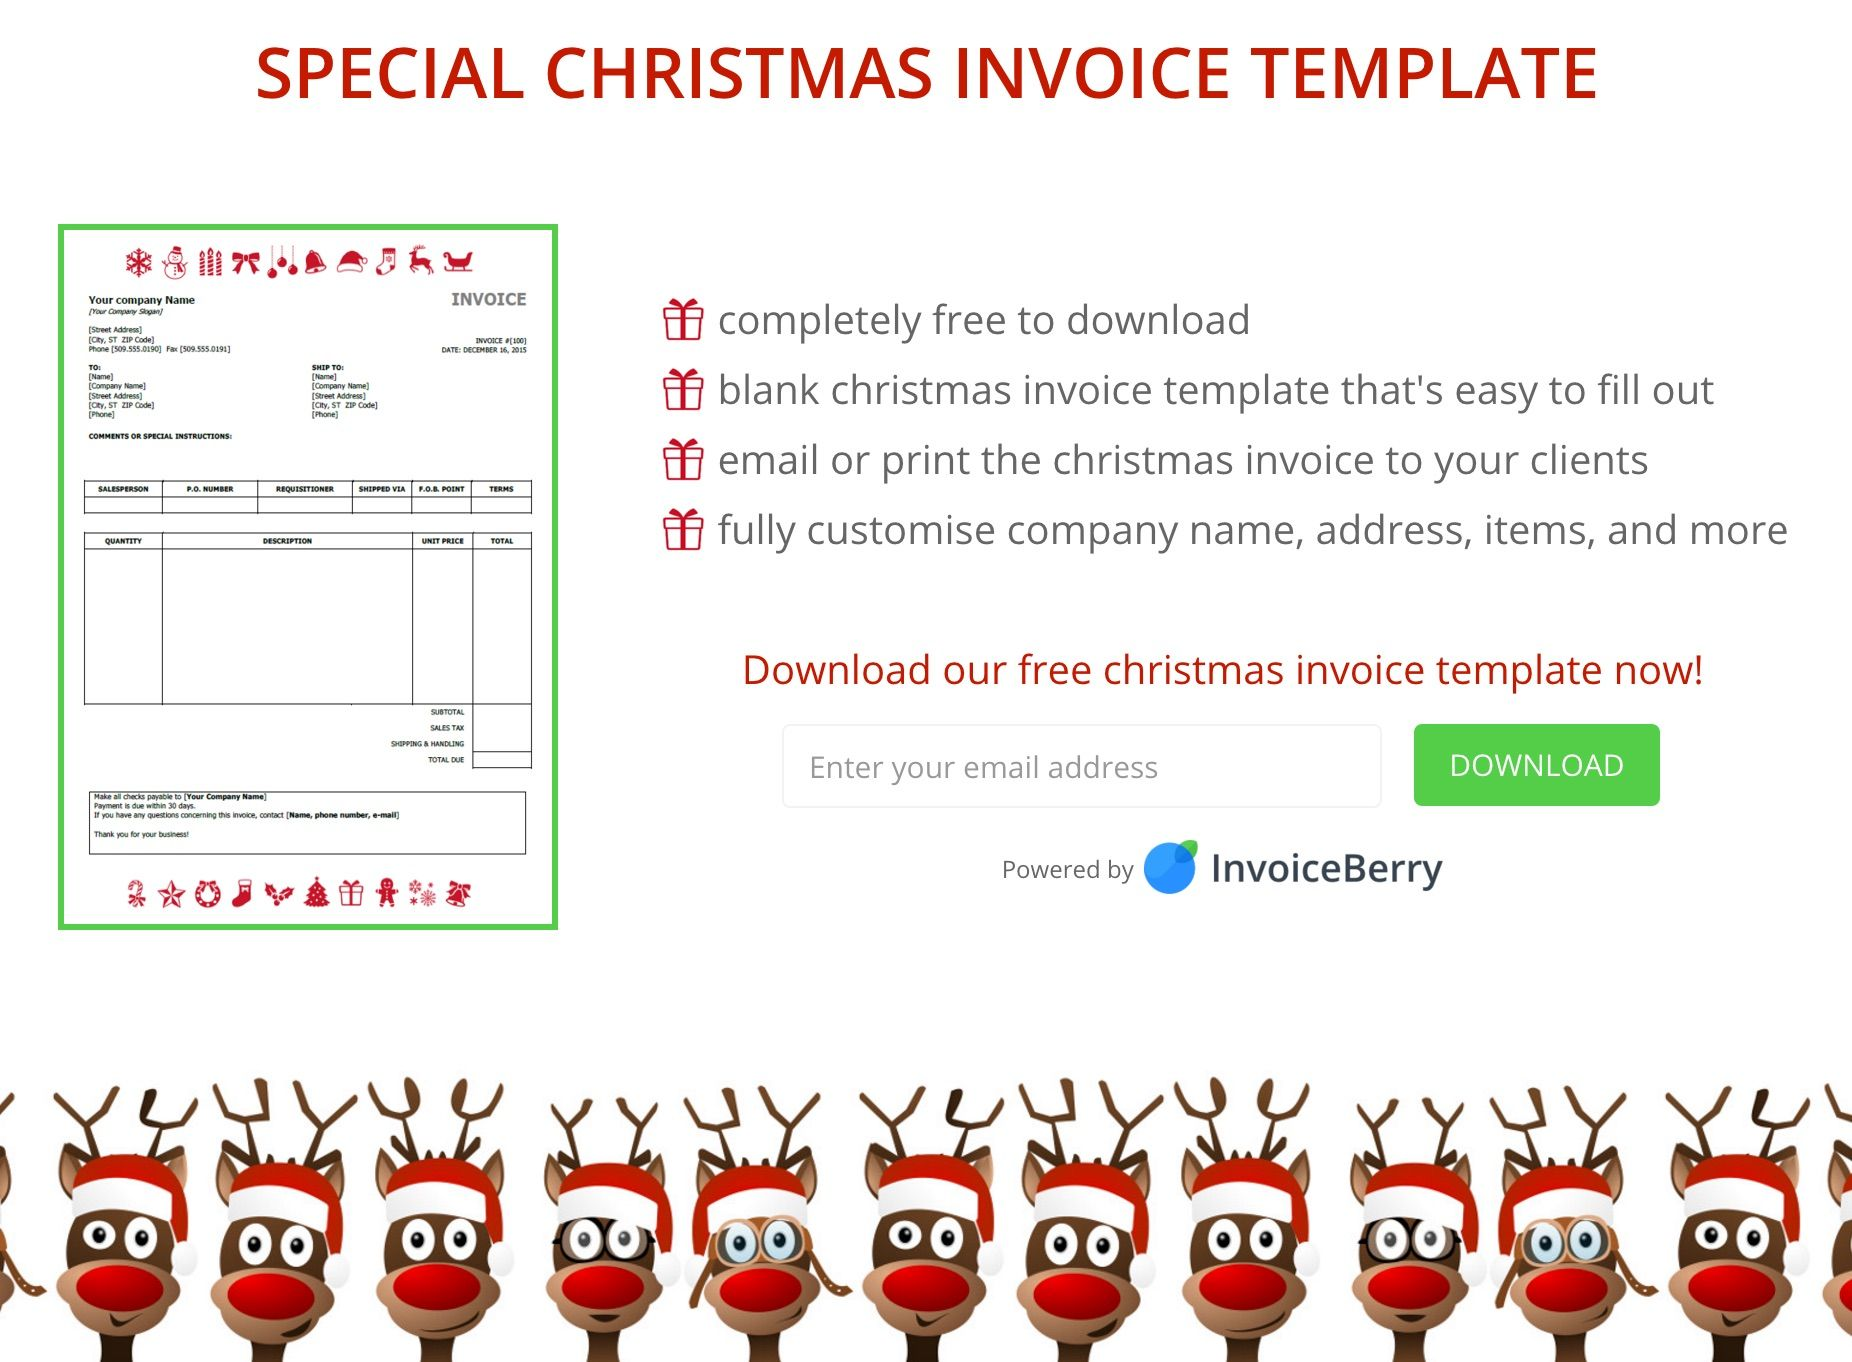 Download Our Christmas Invoice Template Now Get Your Invoices Paid - Quickbooks invoice templates free online weed store